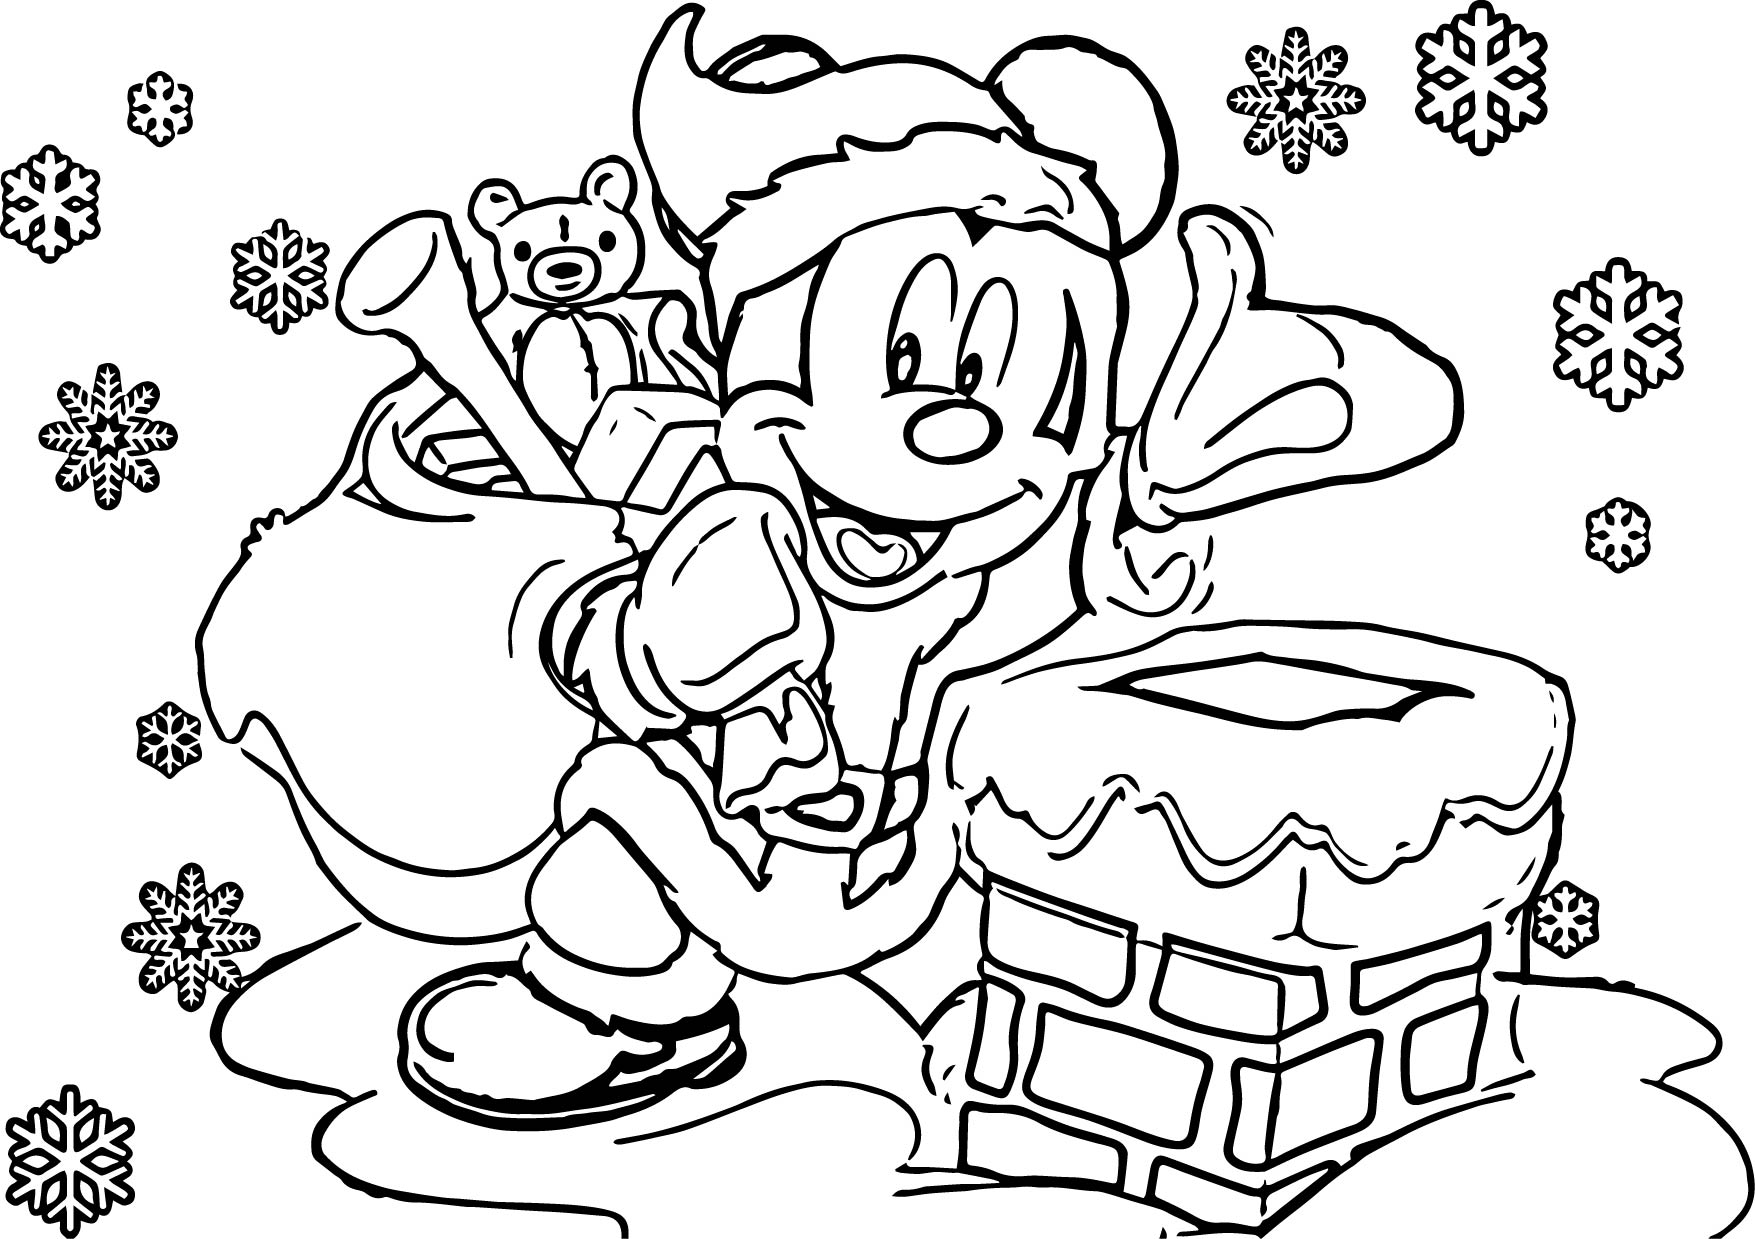 Grinch Coloring Pages At Getcolorings